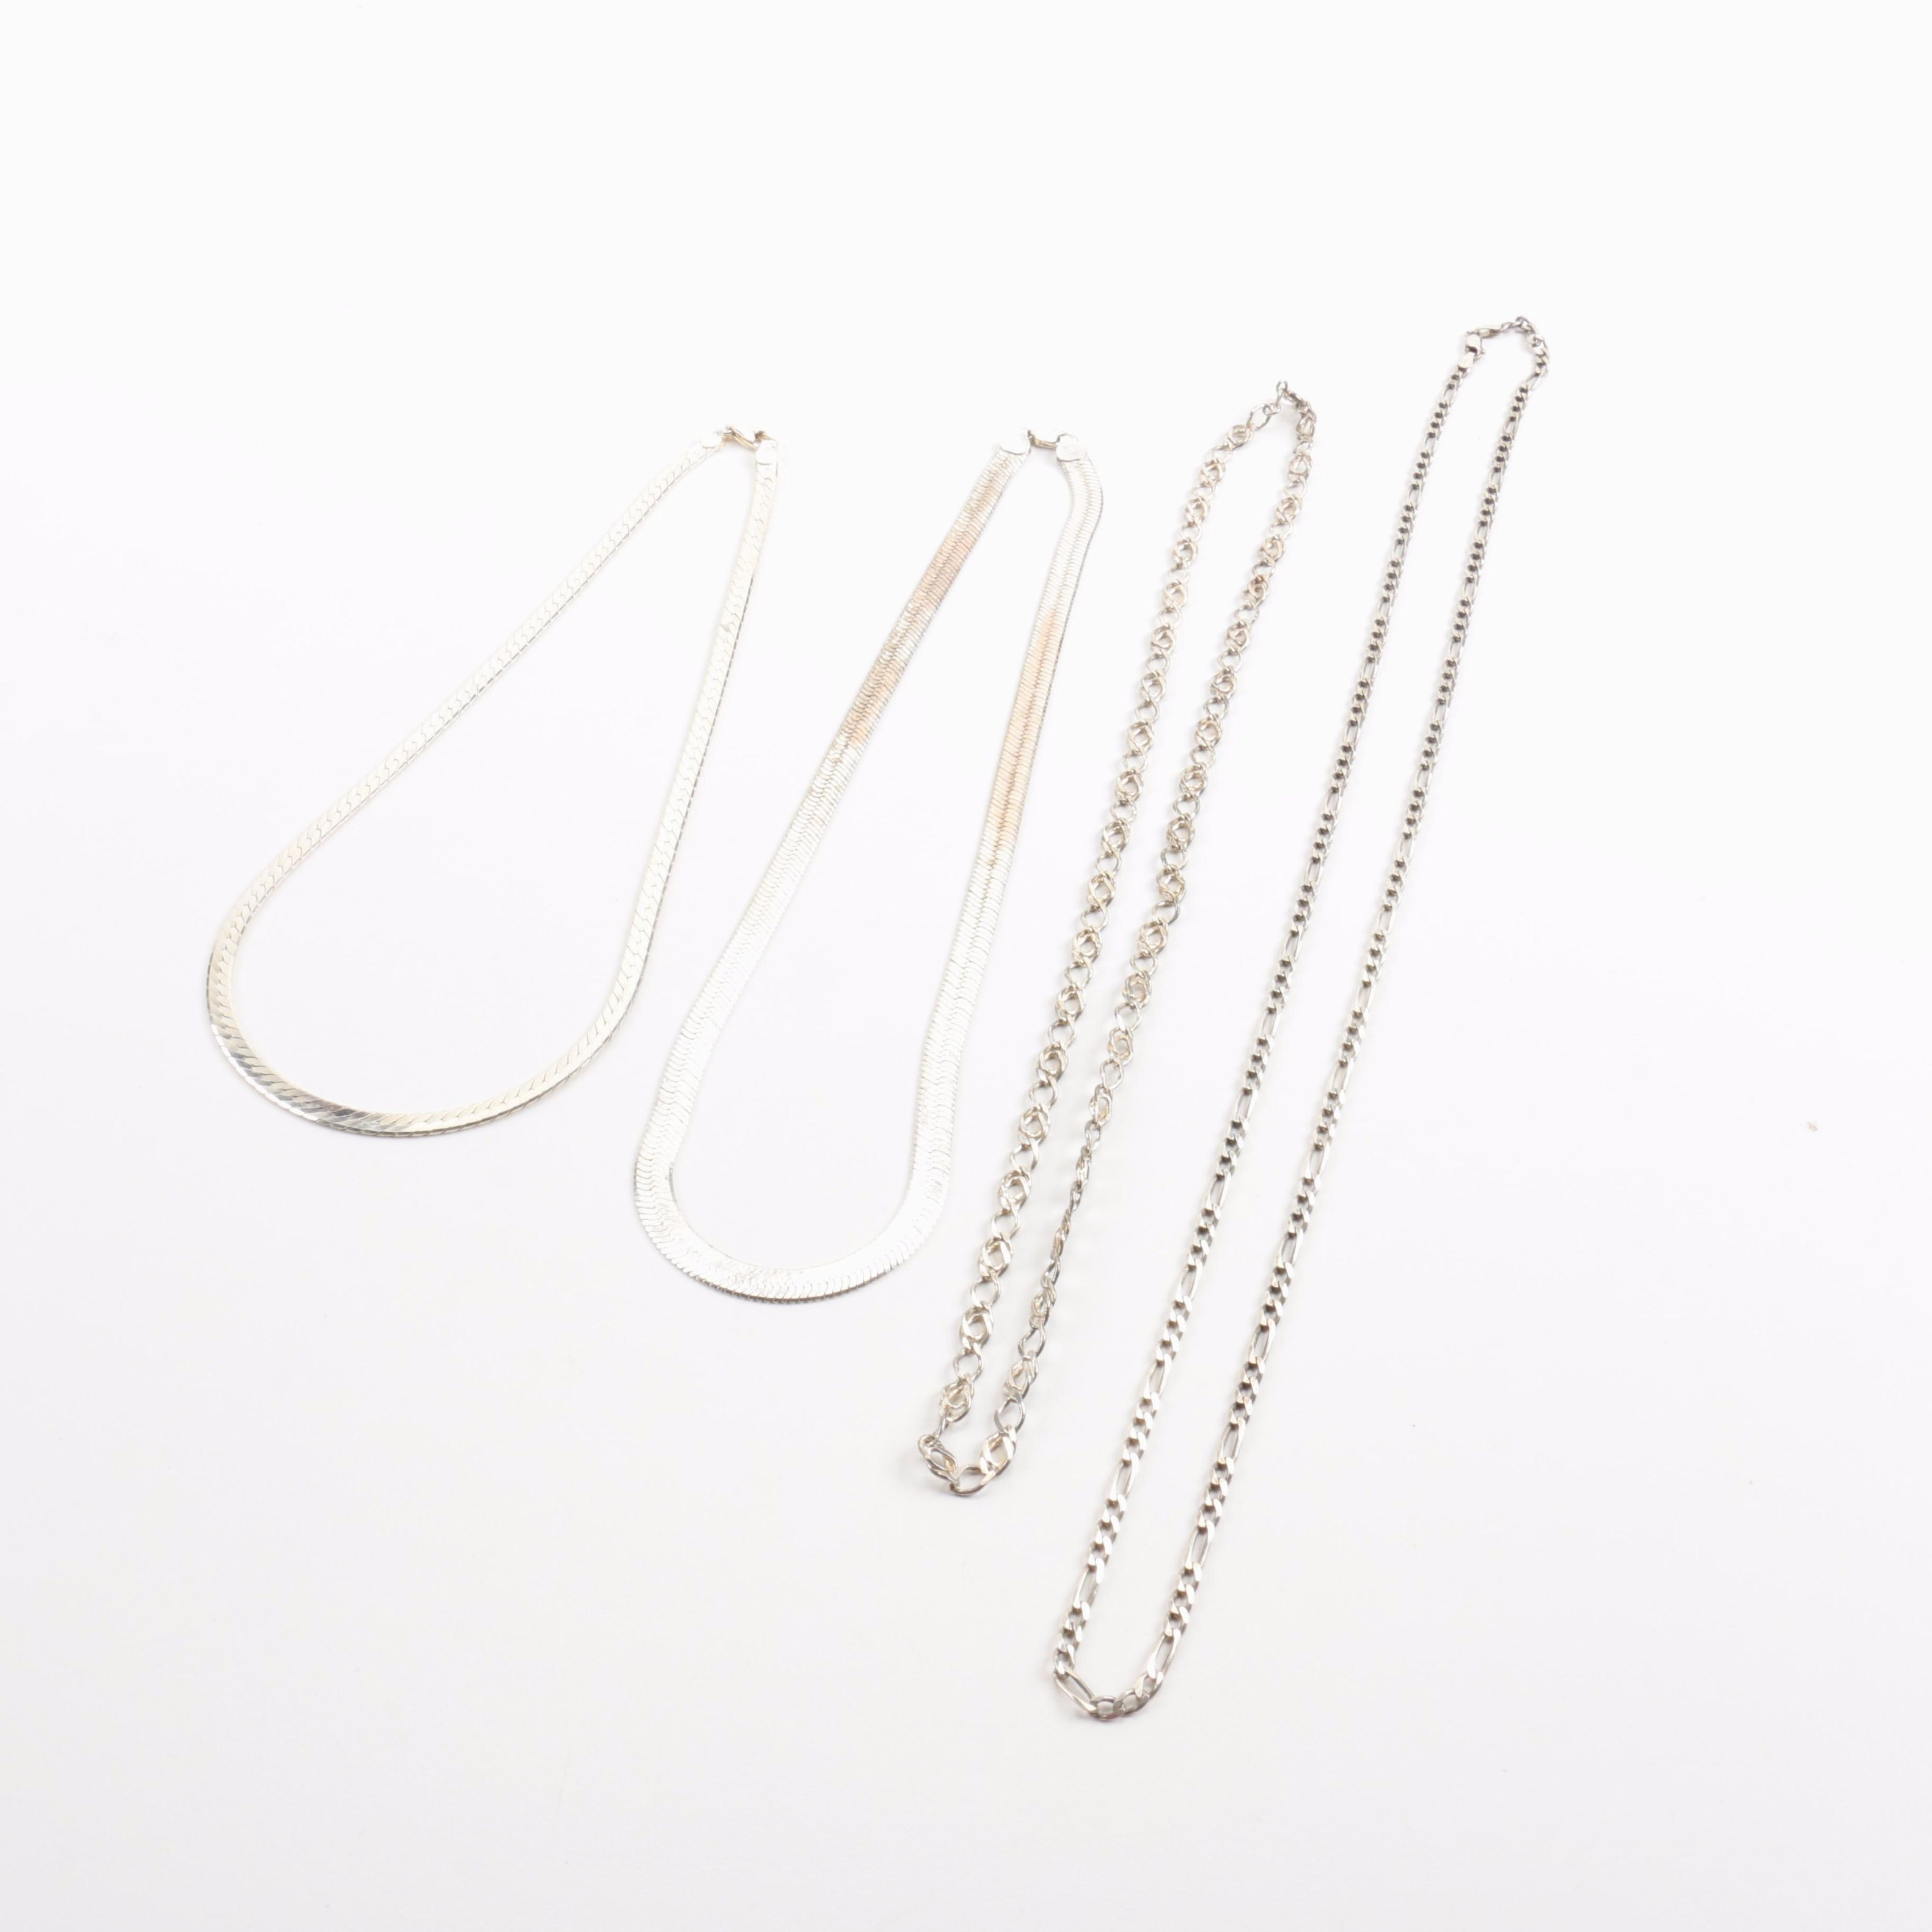 Four Sterling Silver Chain Necklaces